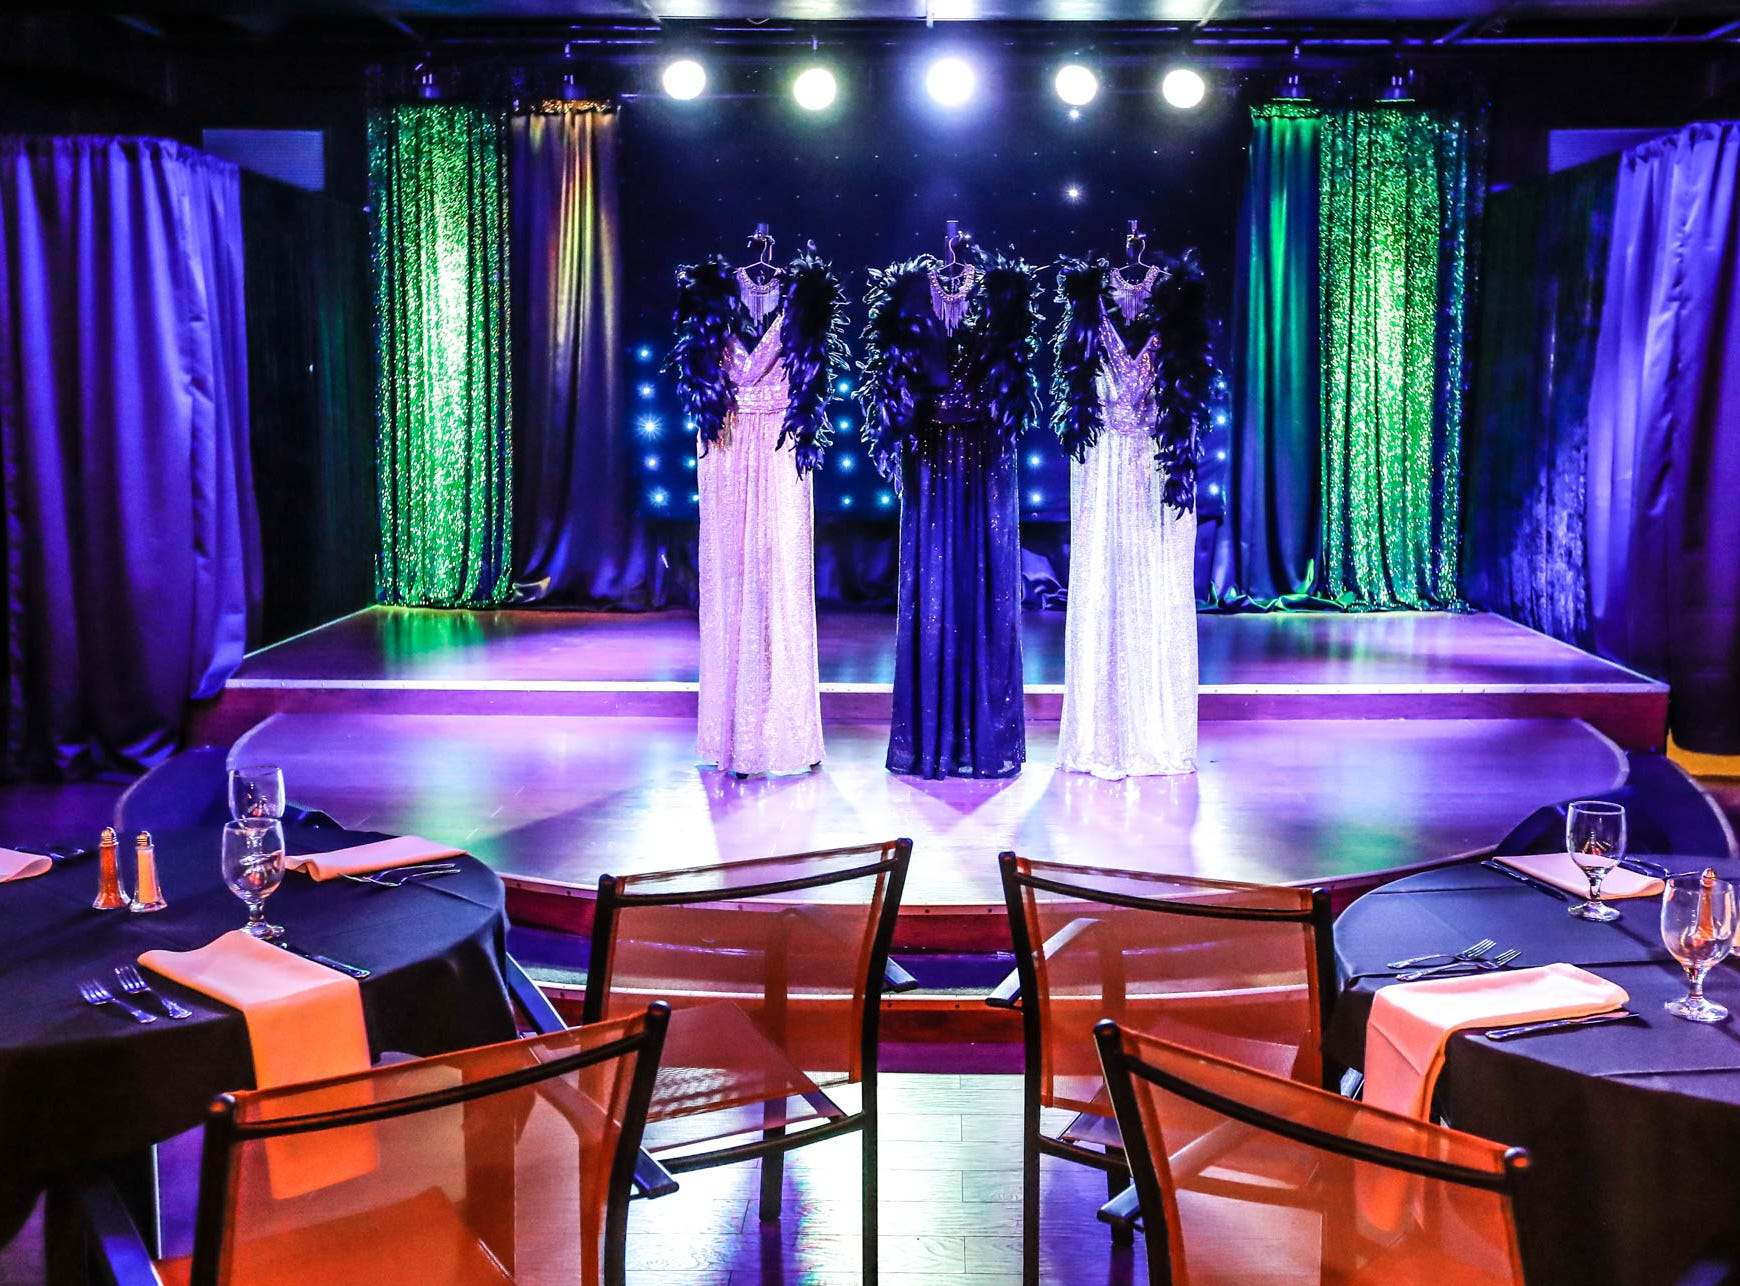 Mood and stage lighting set the scene at  Stage To Screen's Catered Cabaret Theatre, 350 S. Madison Ave., Greenwood Ind. on Thursday, Jan. 17, 2019. The theatre was originally named Stage To Screen Studios, but has since evolved into the Cabaret Dinner Theatre.